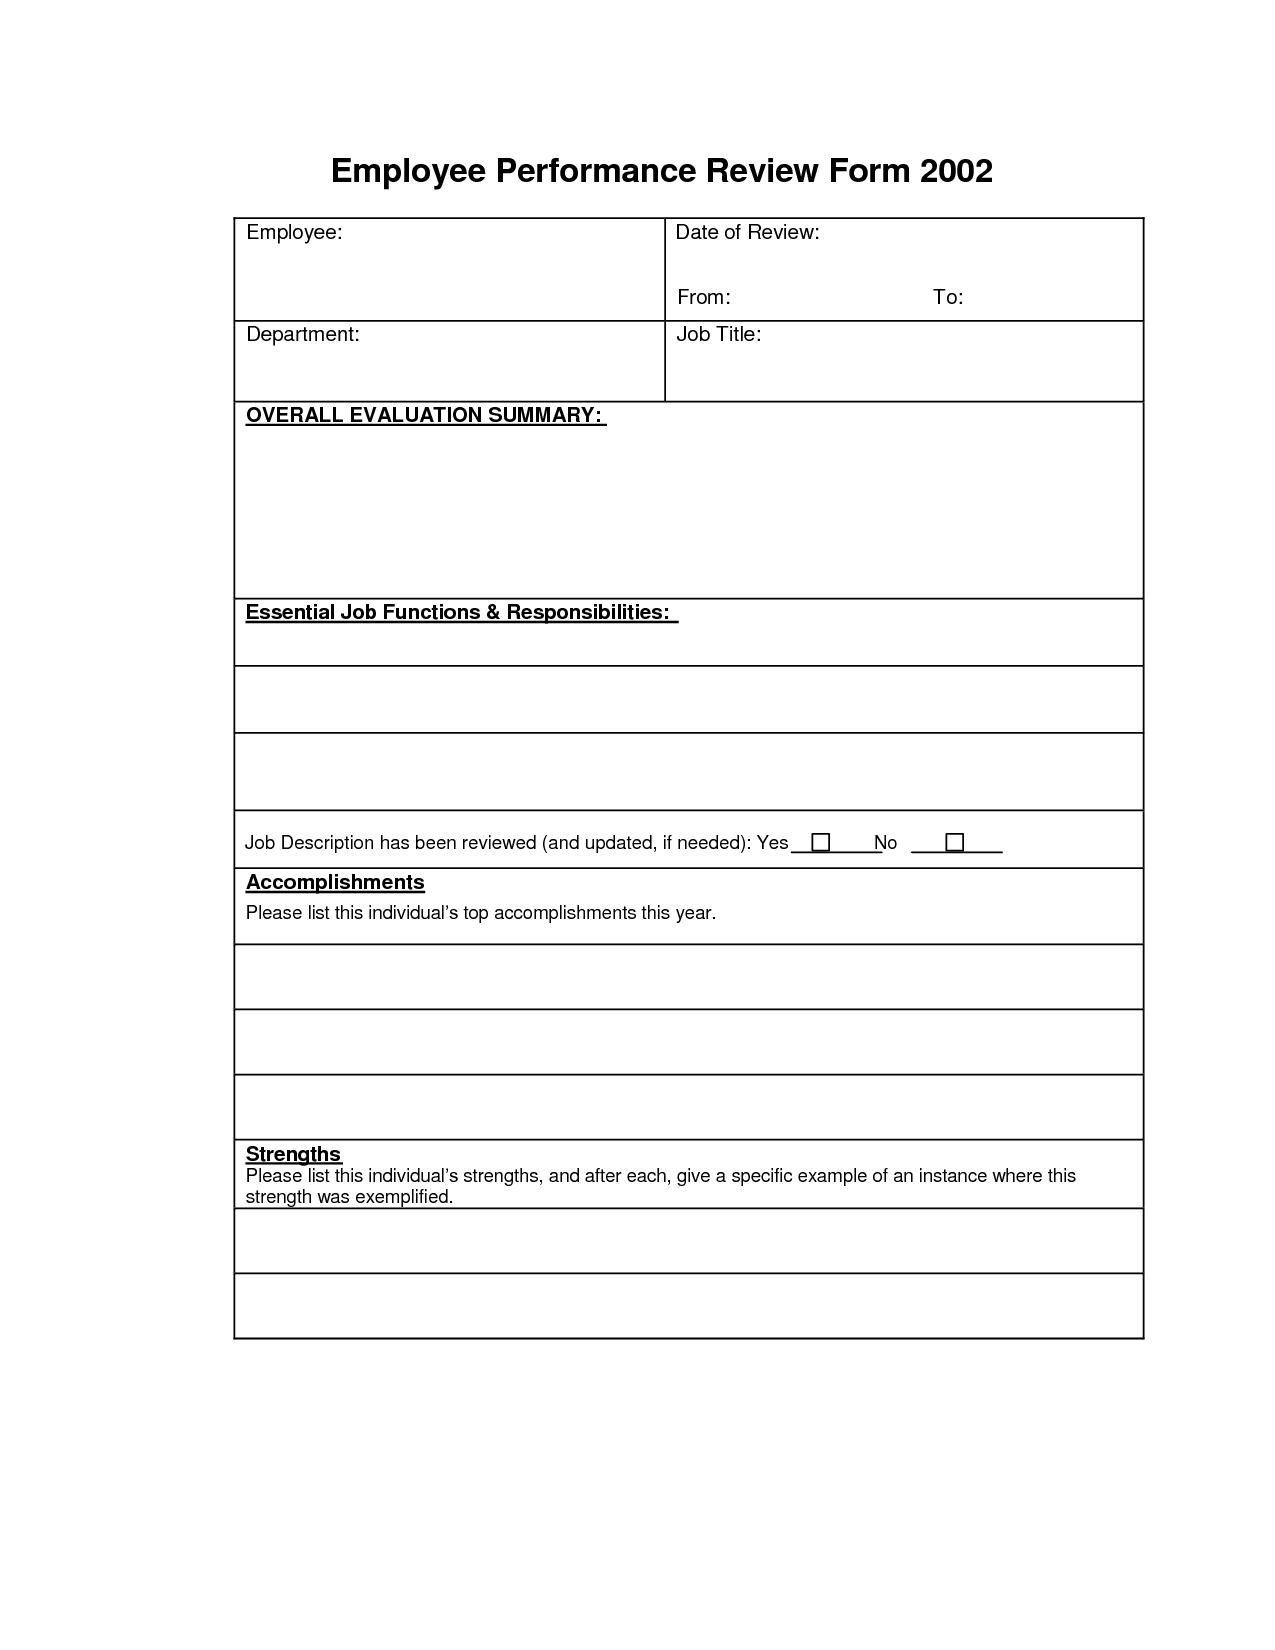 Employee Performance Review Form Free Picture